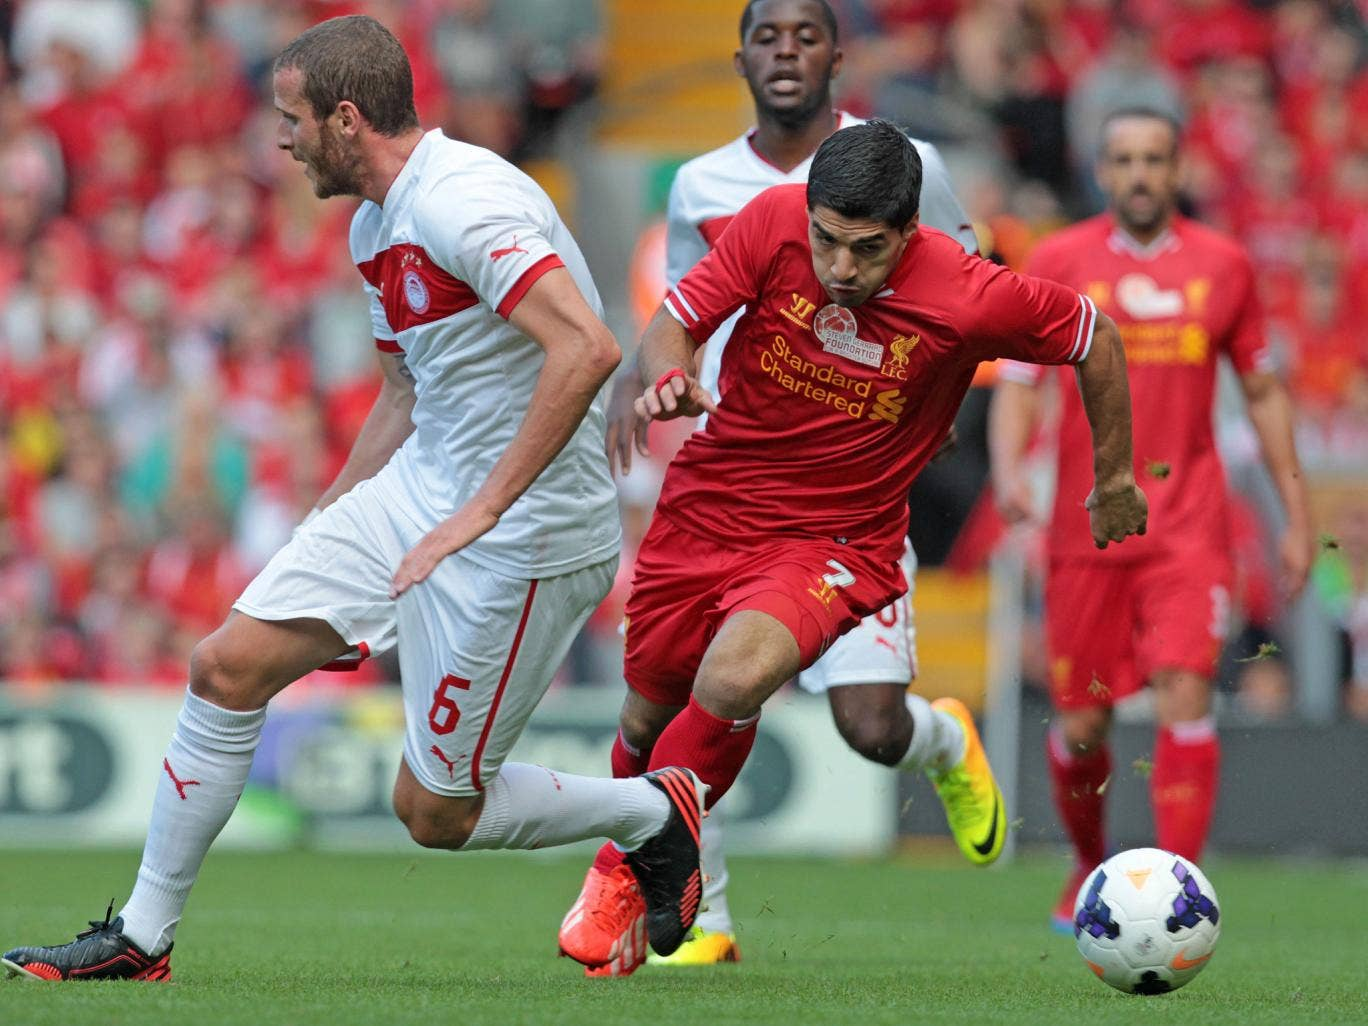 Luis Suarez in action during Steven Gerrard's testimonial as Liverpool take on Olympiacos